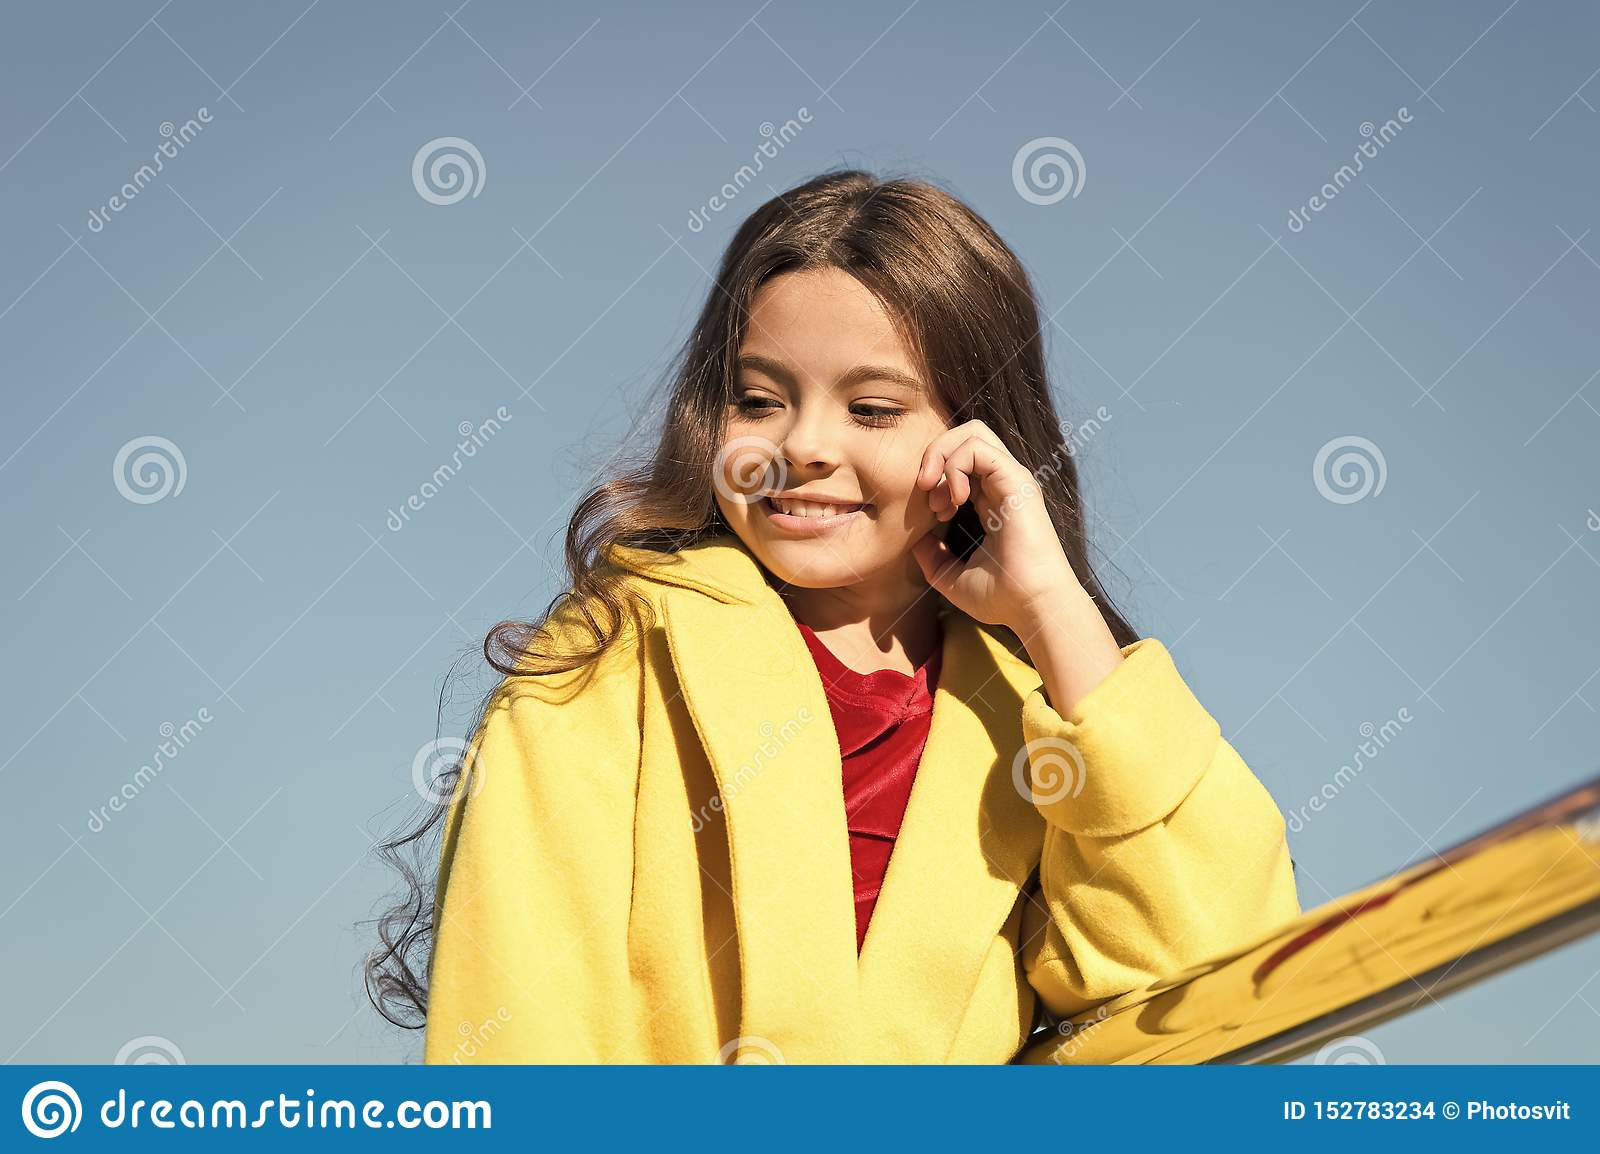 Being proud of her hair. Little child with stylish long brunette hair. Fashion look of hair model. Small girl with